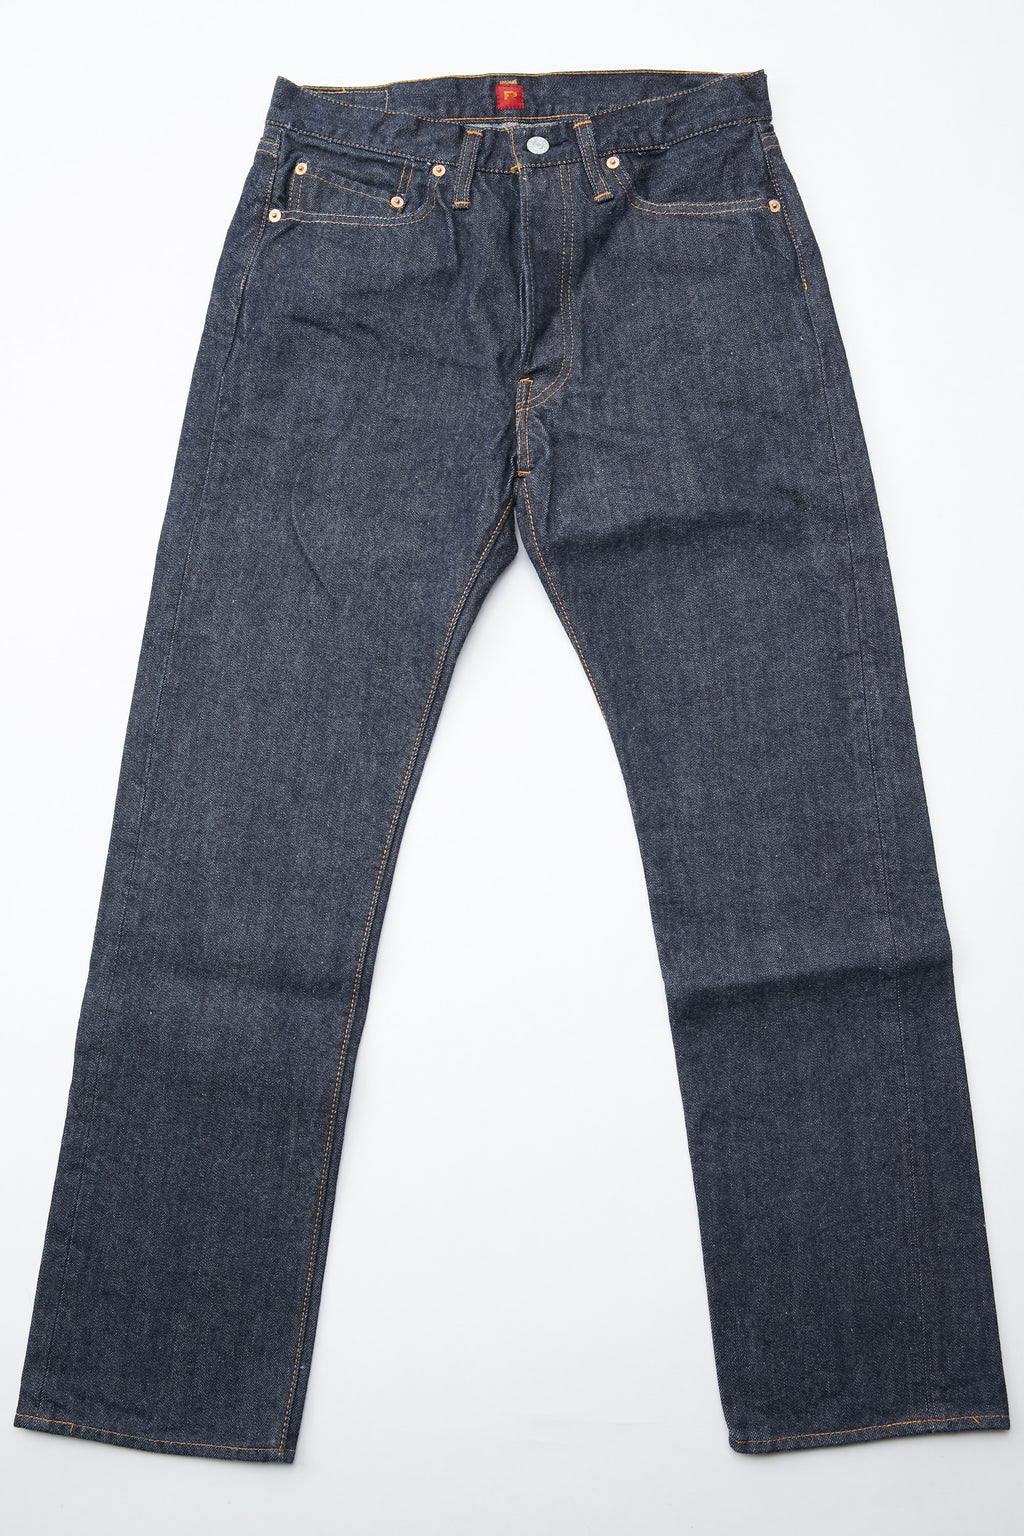 Resolute 710 Slim Straight One Wash Denim